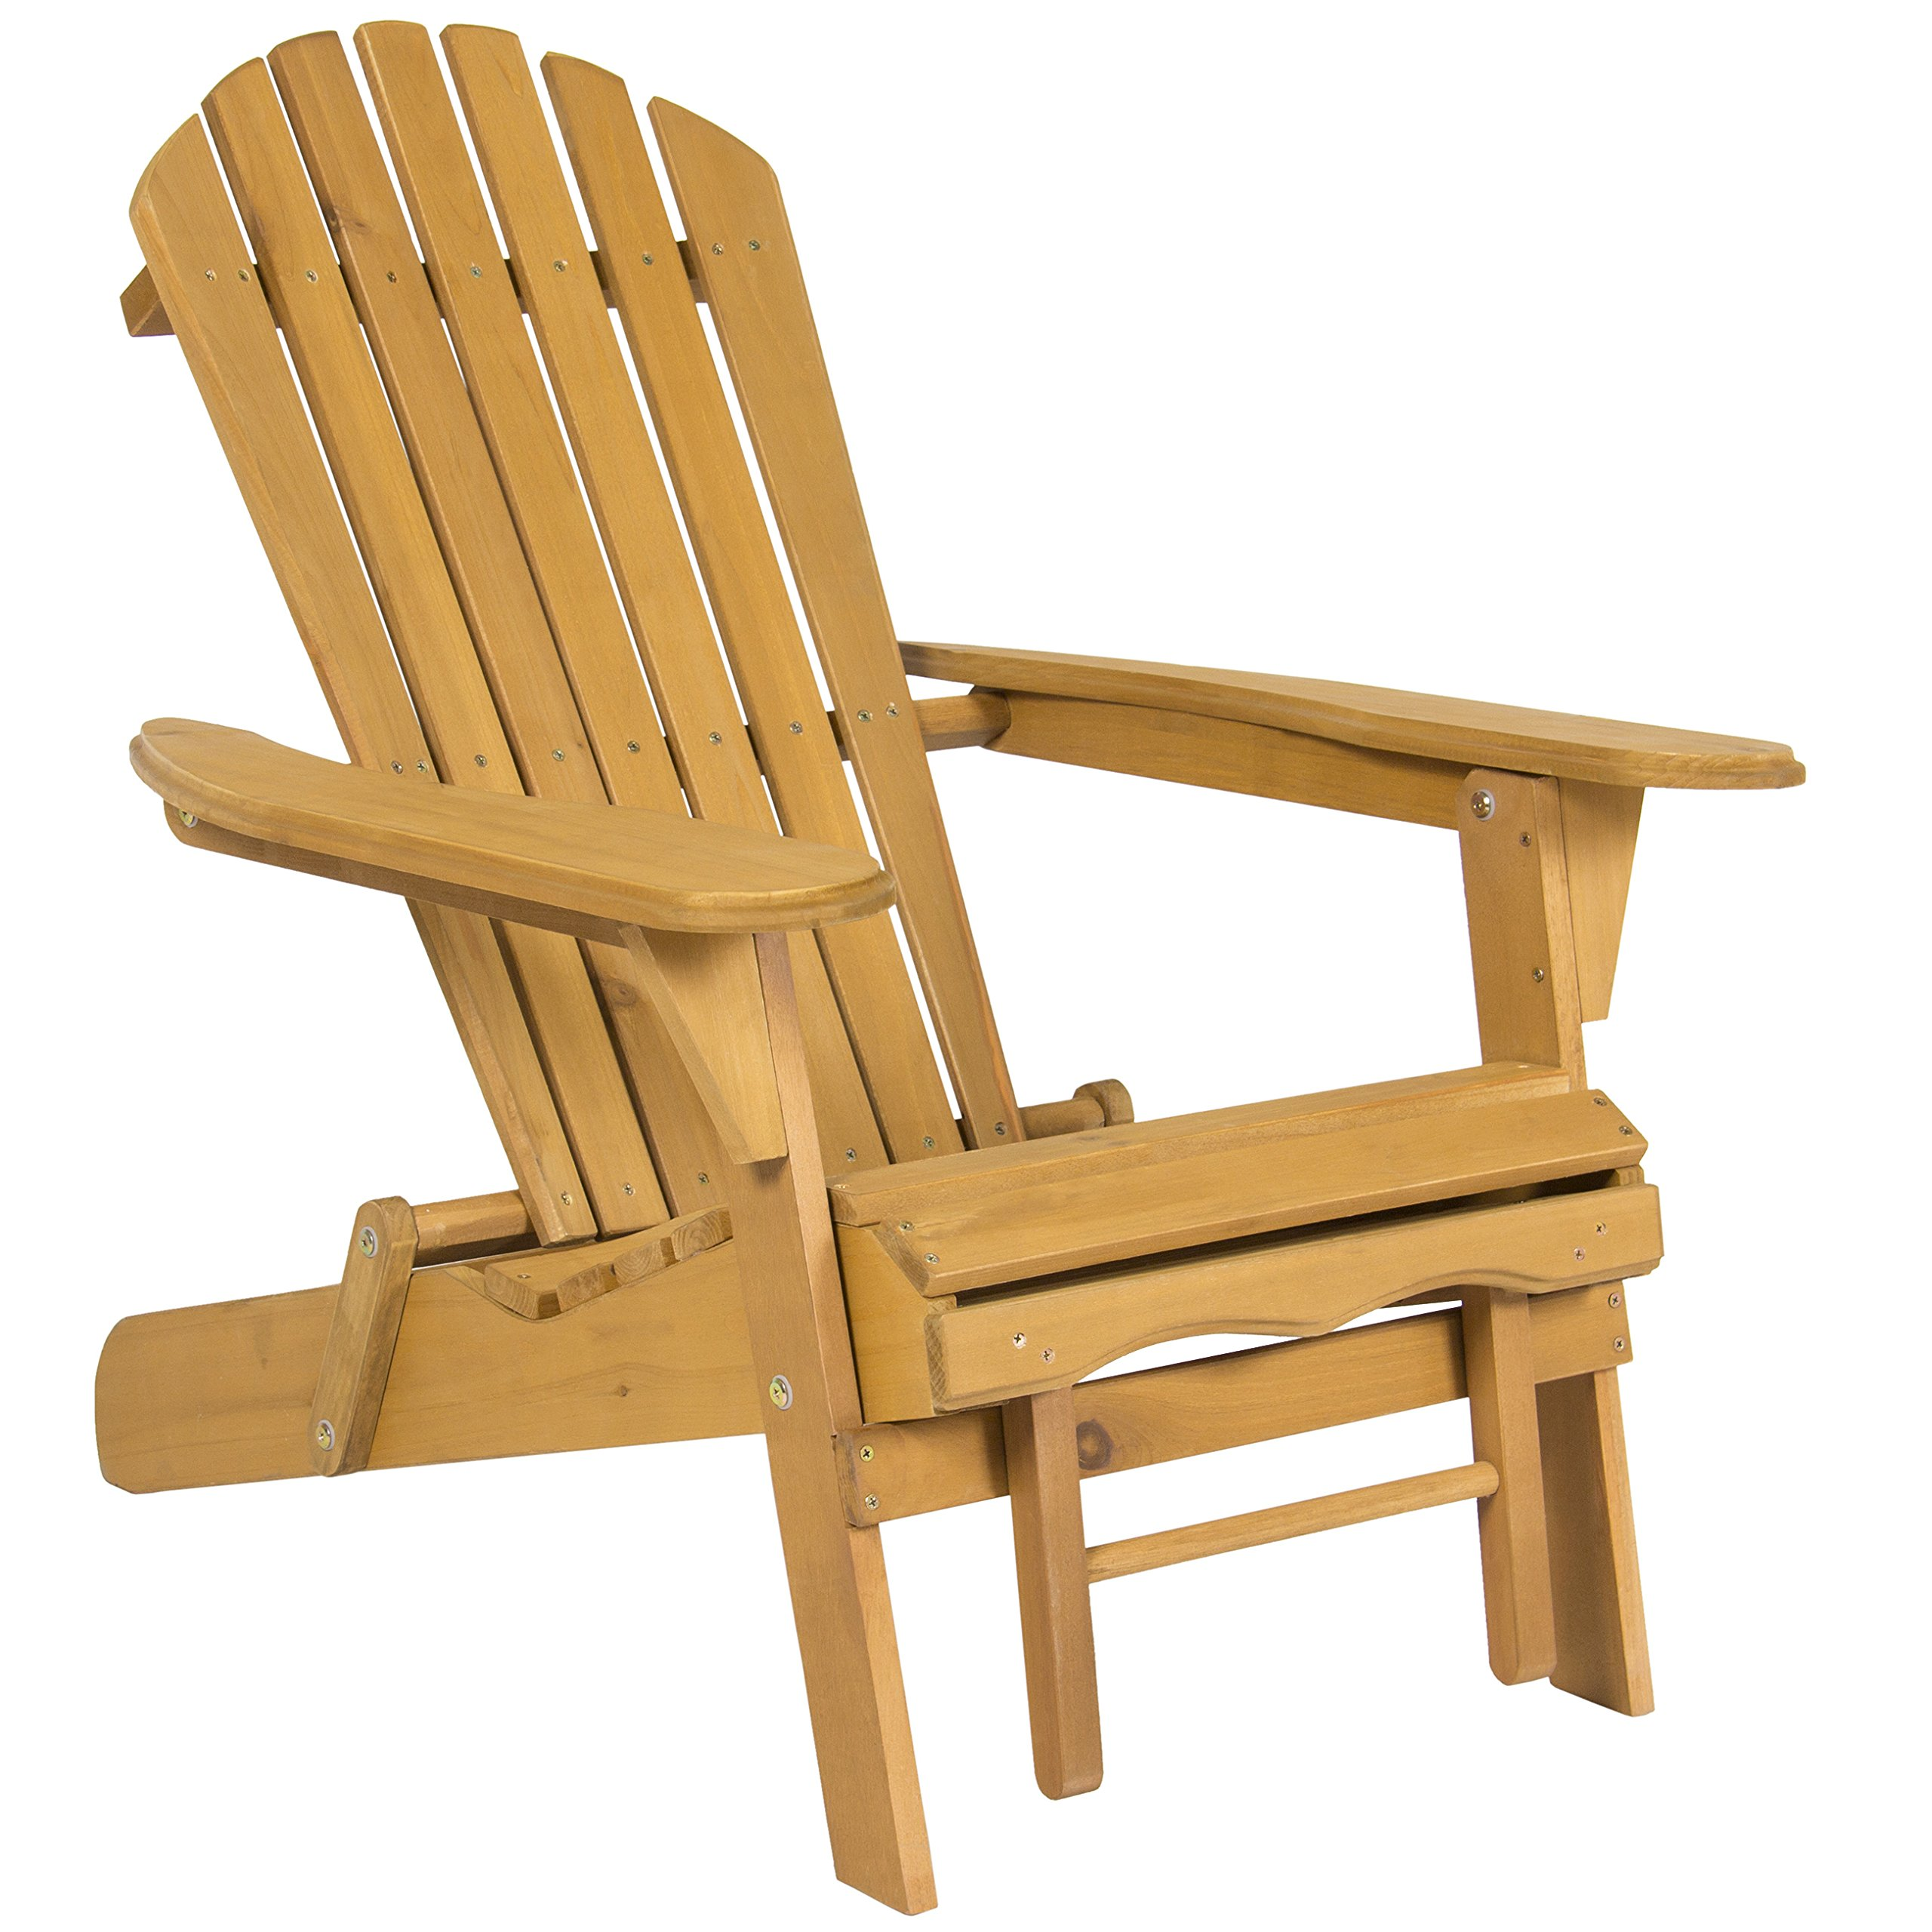 Best Choice Products SKY2254 Outdoor Patio Deck Garden Foldable Adirondack Wood Chair with Pull Out Ottoman by Best Choice Products